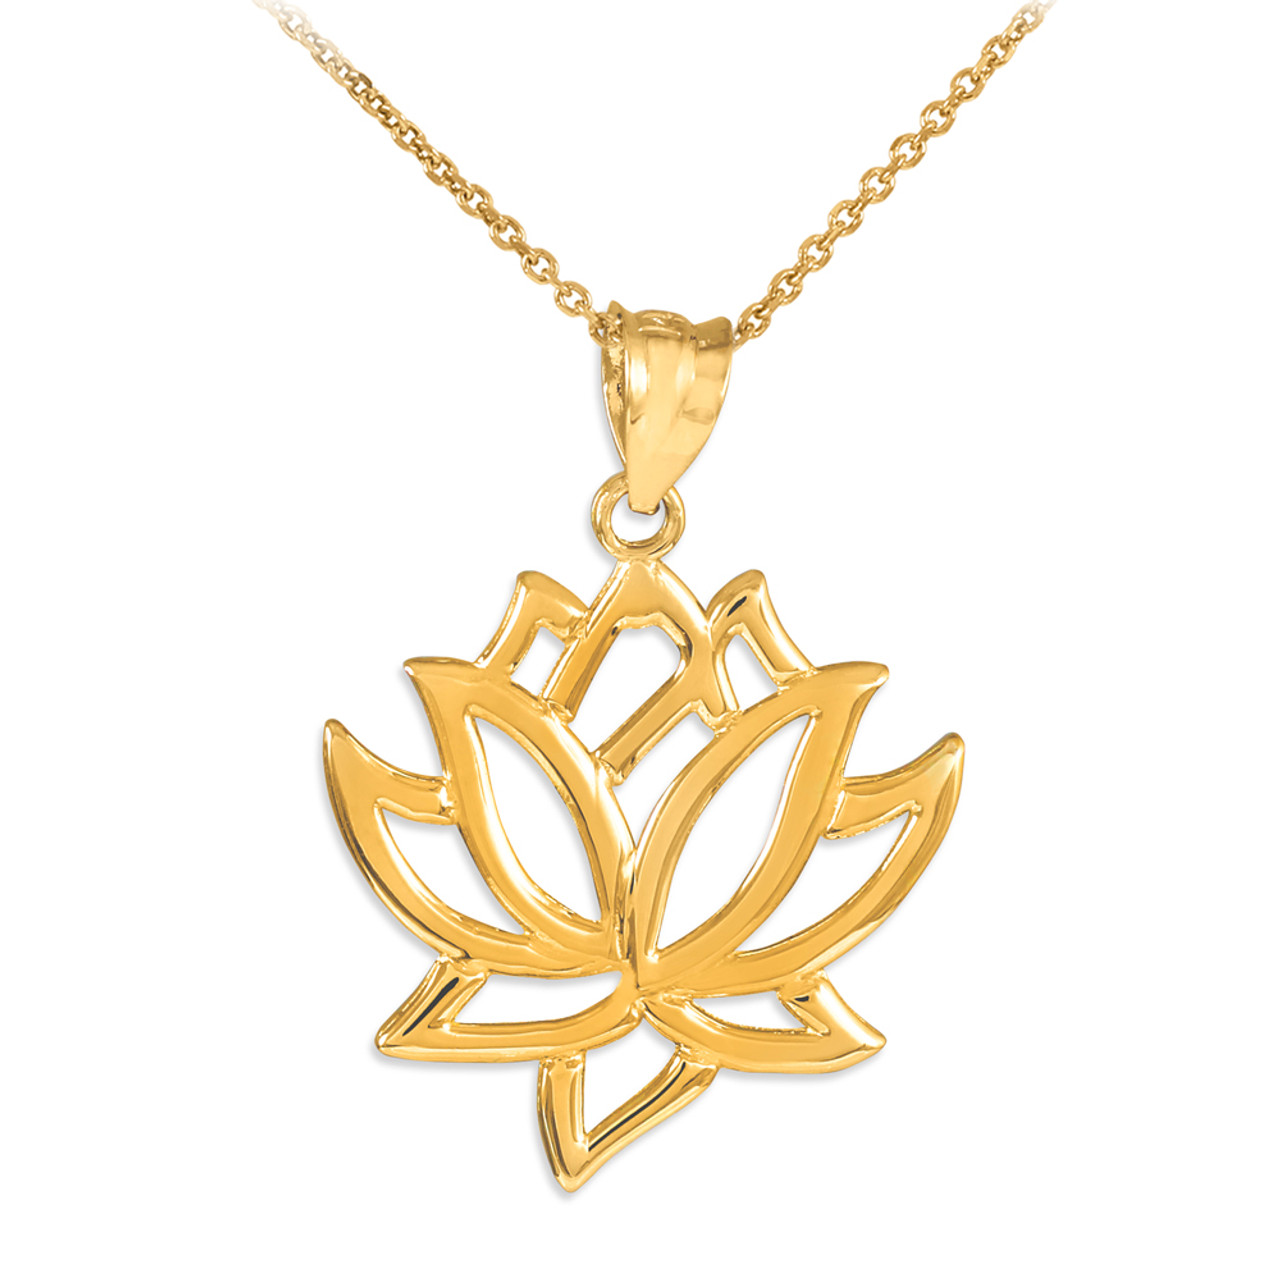 Gold lotus flower pendant gold lotus flower pendant necklace izmirmasajfo